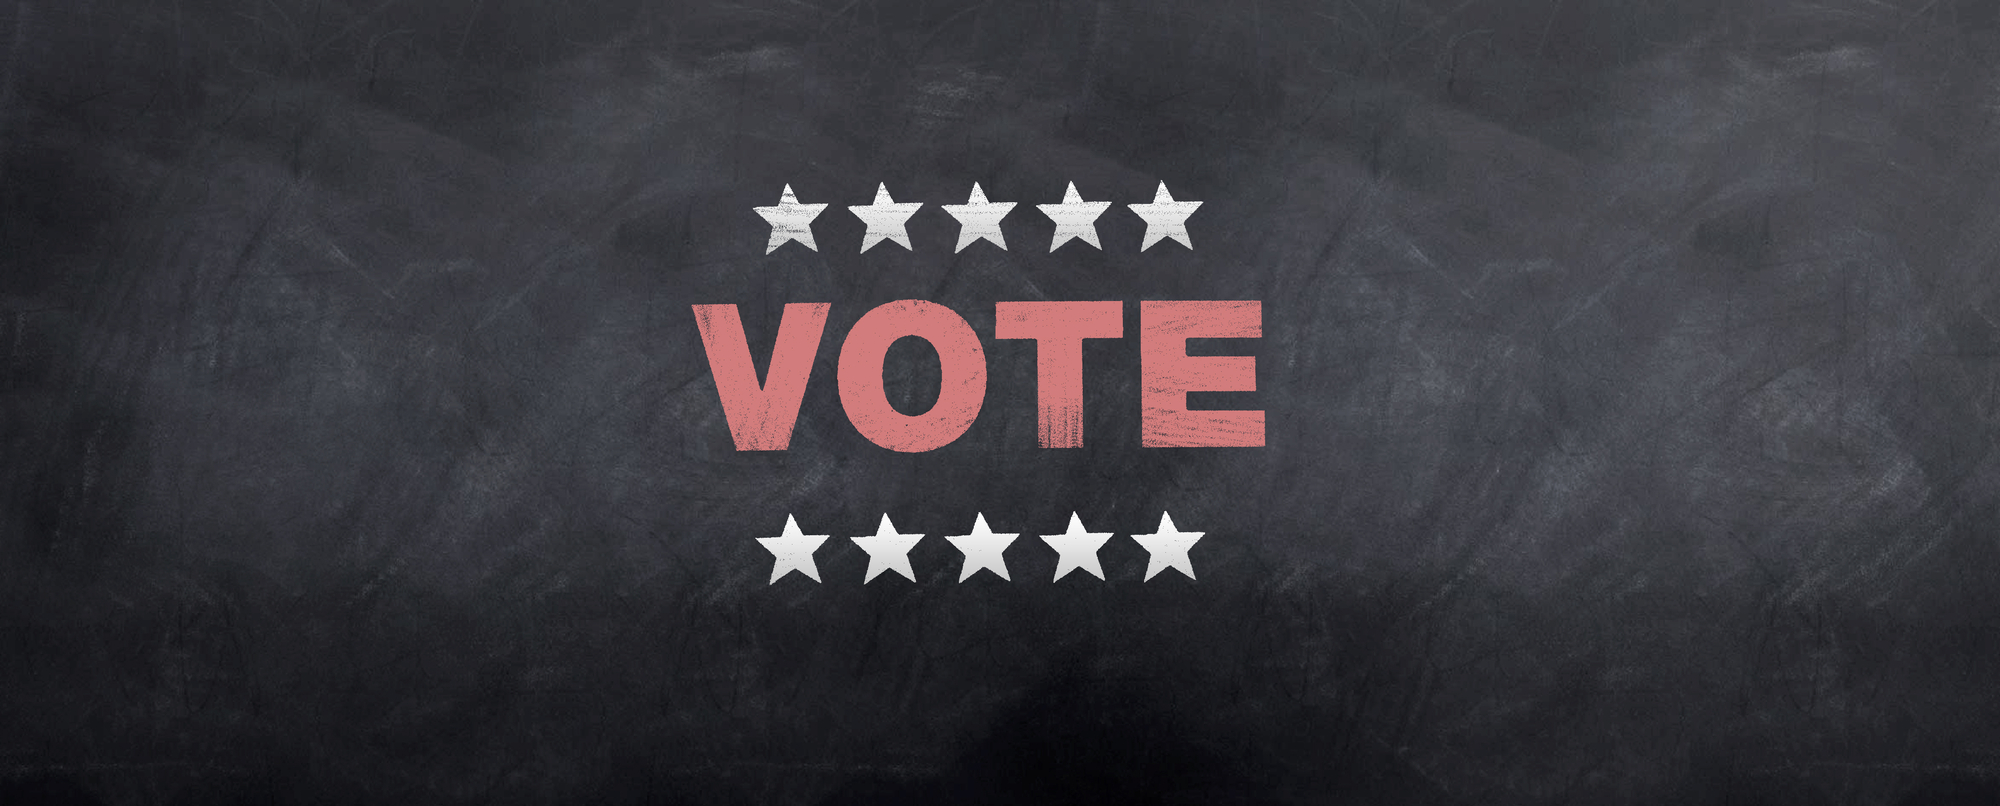 Vote - Resources from the State of Michigan